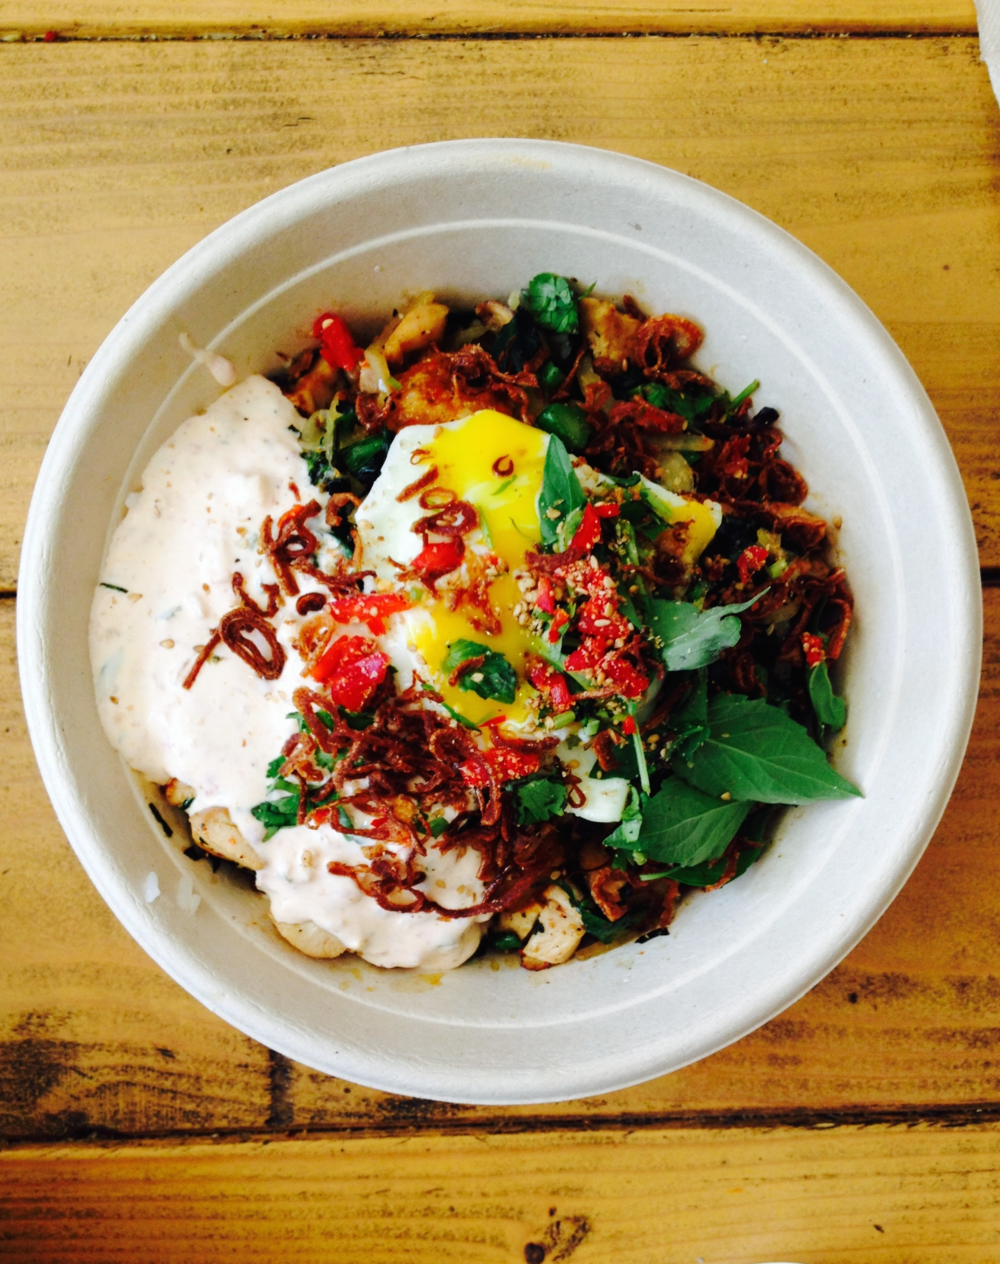 Sour Cream Hen House - marinated grilled chicken rice bowl with fried egg, Chinese broccoli, sour cream sambal, Thai basil, toasted sesame, and red jalapeño.